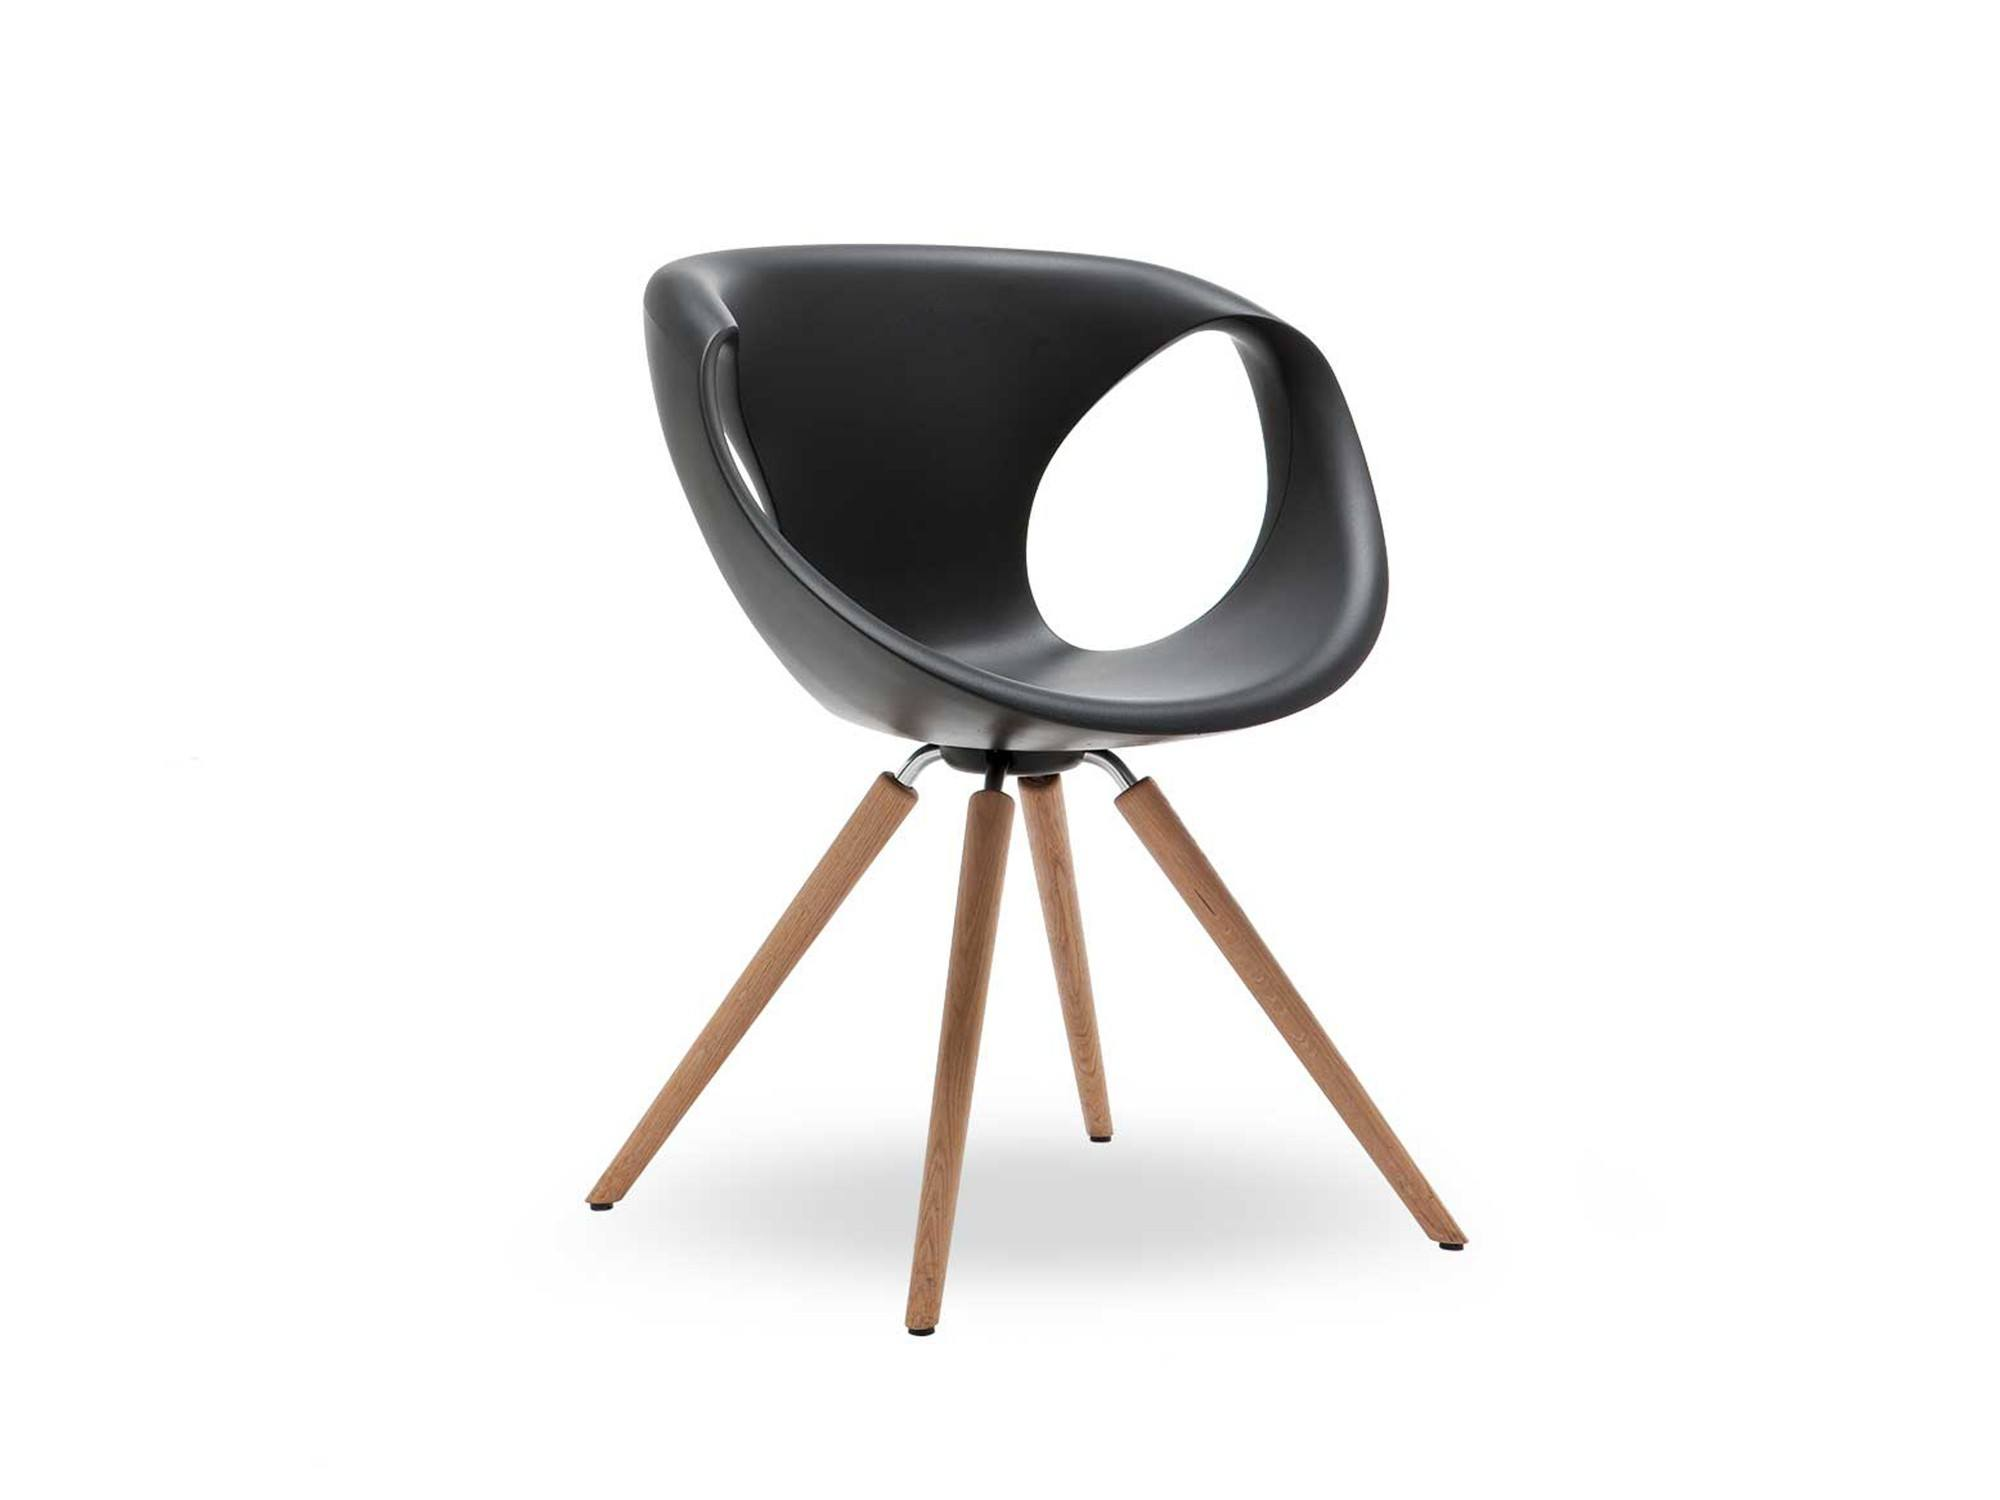 Up - Stoel met italiaans design